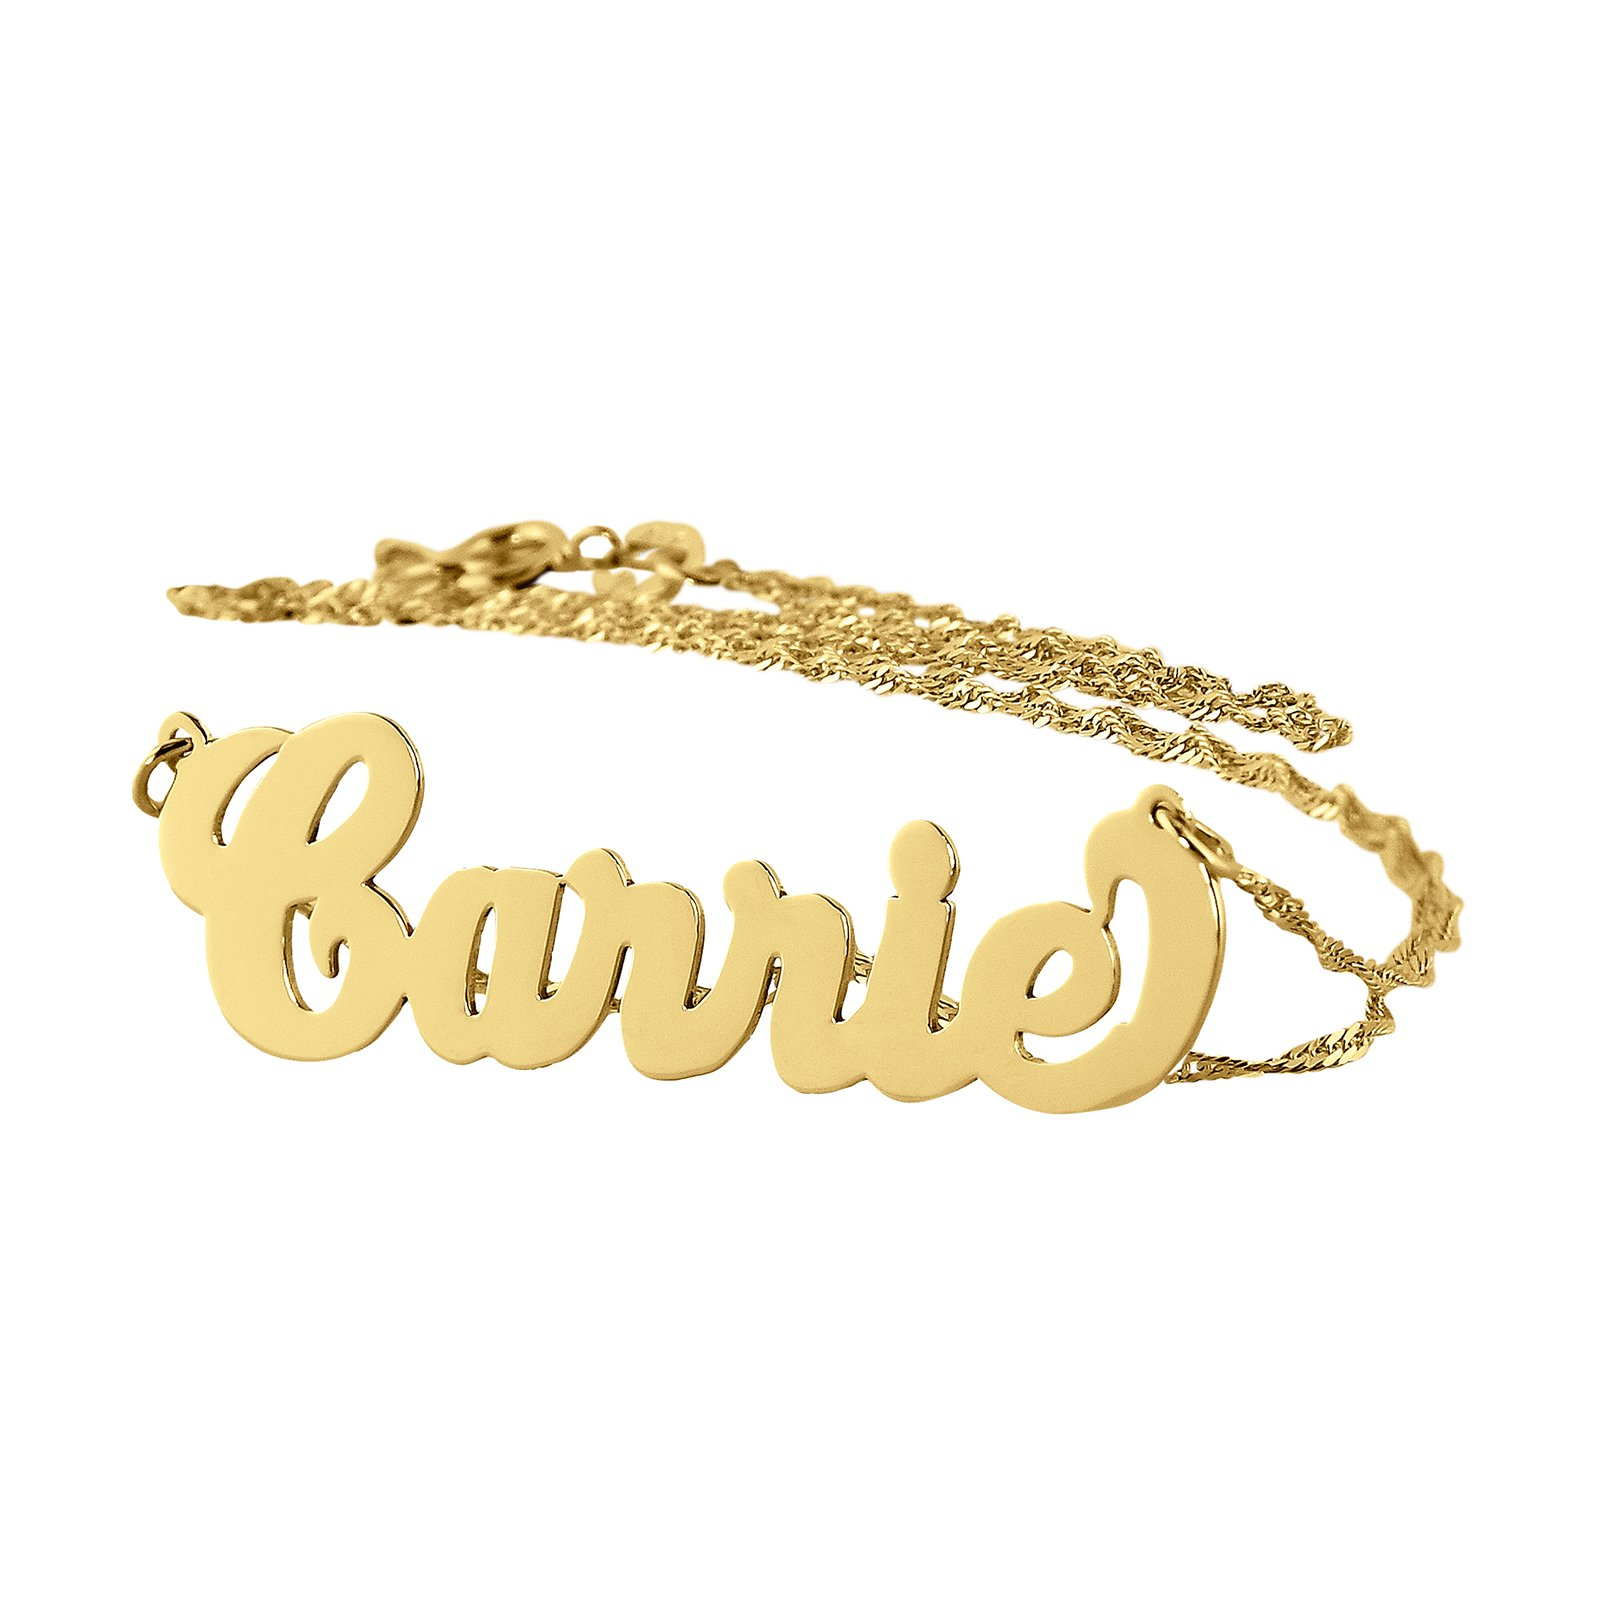 Dainty Carrie Name Necklace Personalized Solid 10k Gold Pendant 1.25 Inch Charm Chain (20) by Soul Jewelry